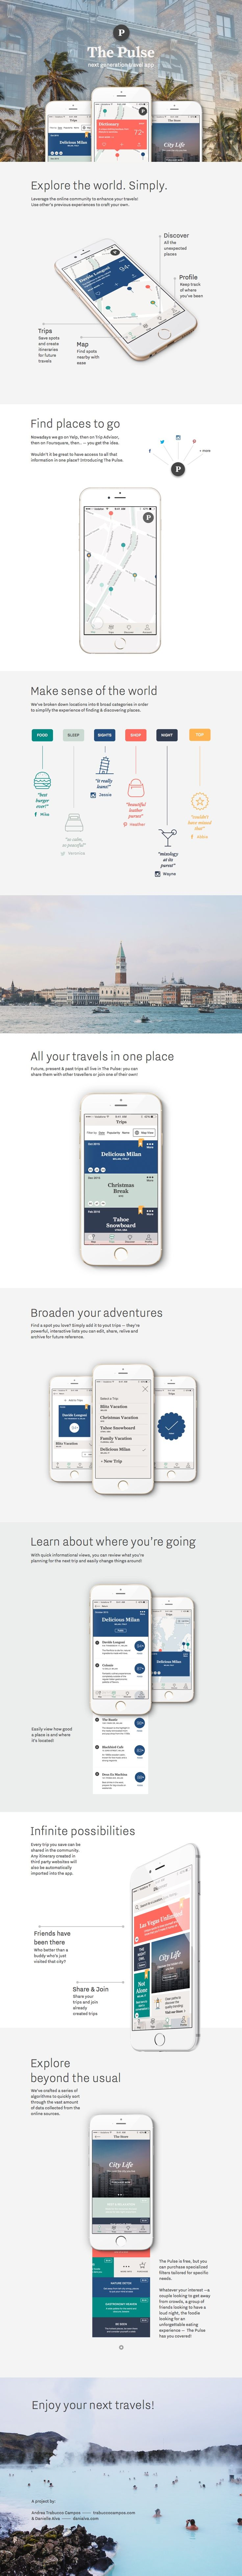 The Pulse travel app by Andrea A. Trabucco-Campos + Danielle Alva #ux #ui #mobile #app